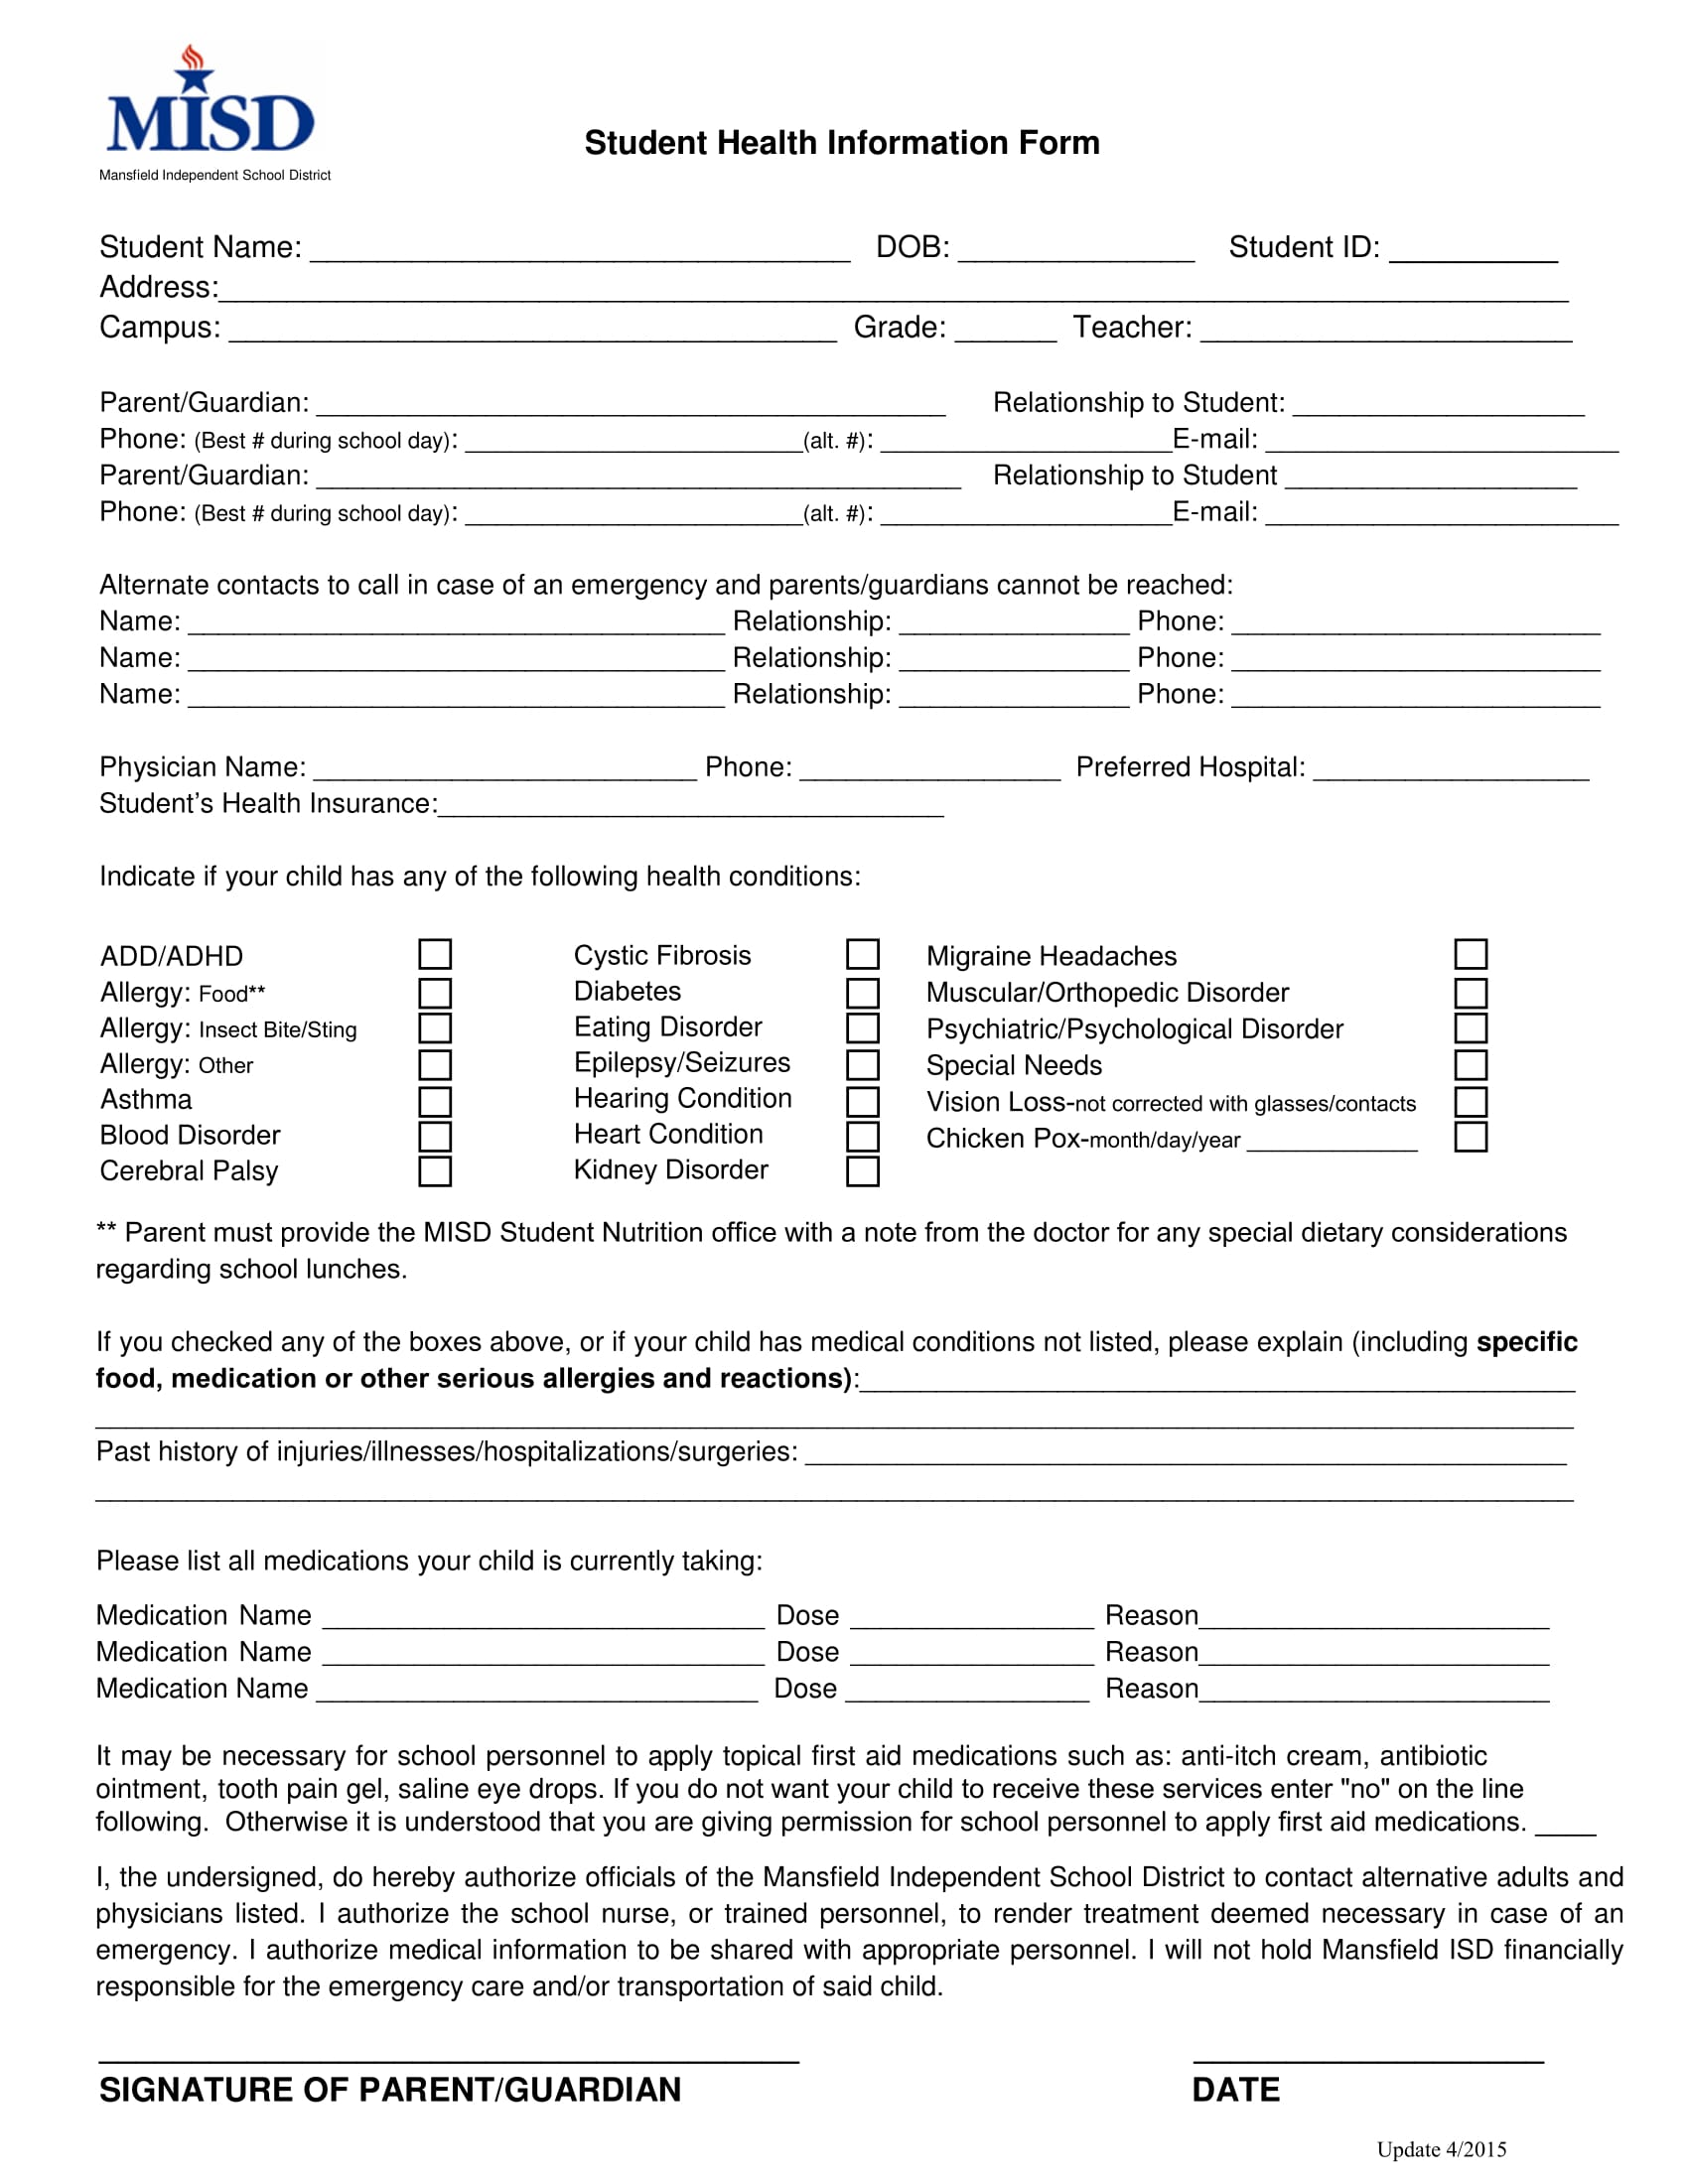 fillable student health information form 1